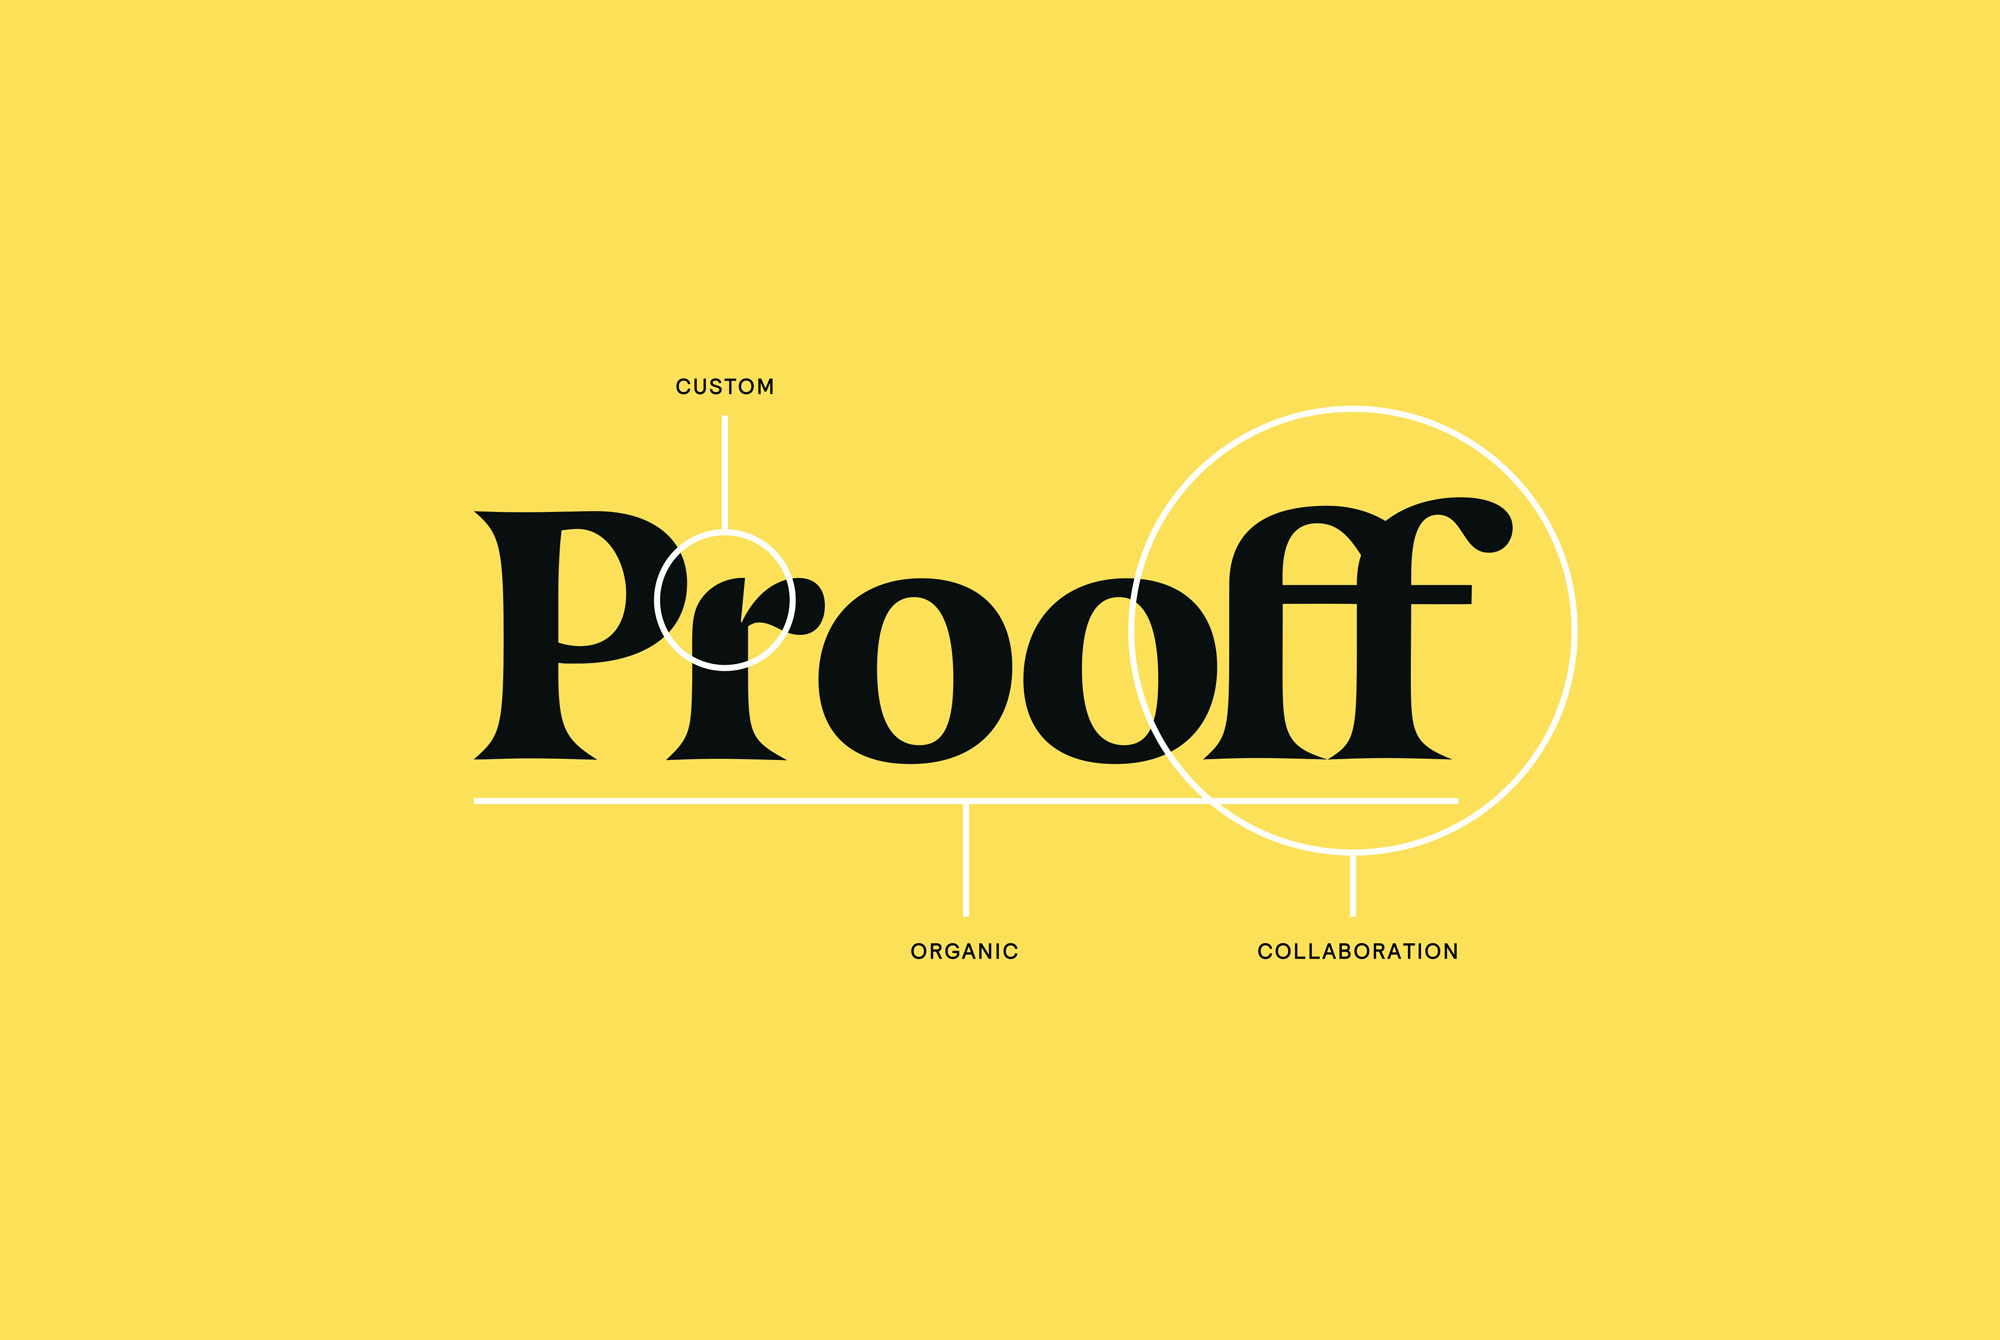 Prooff_logodiagram